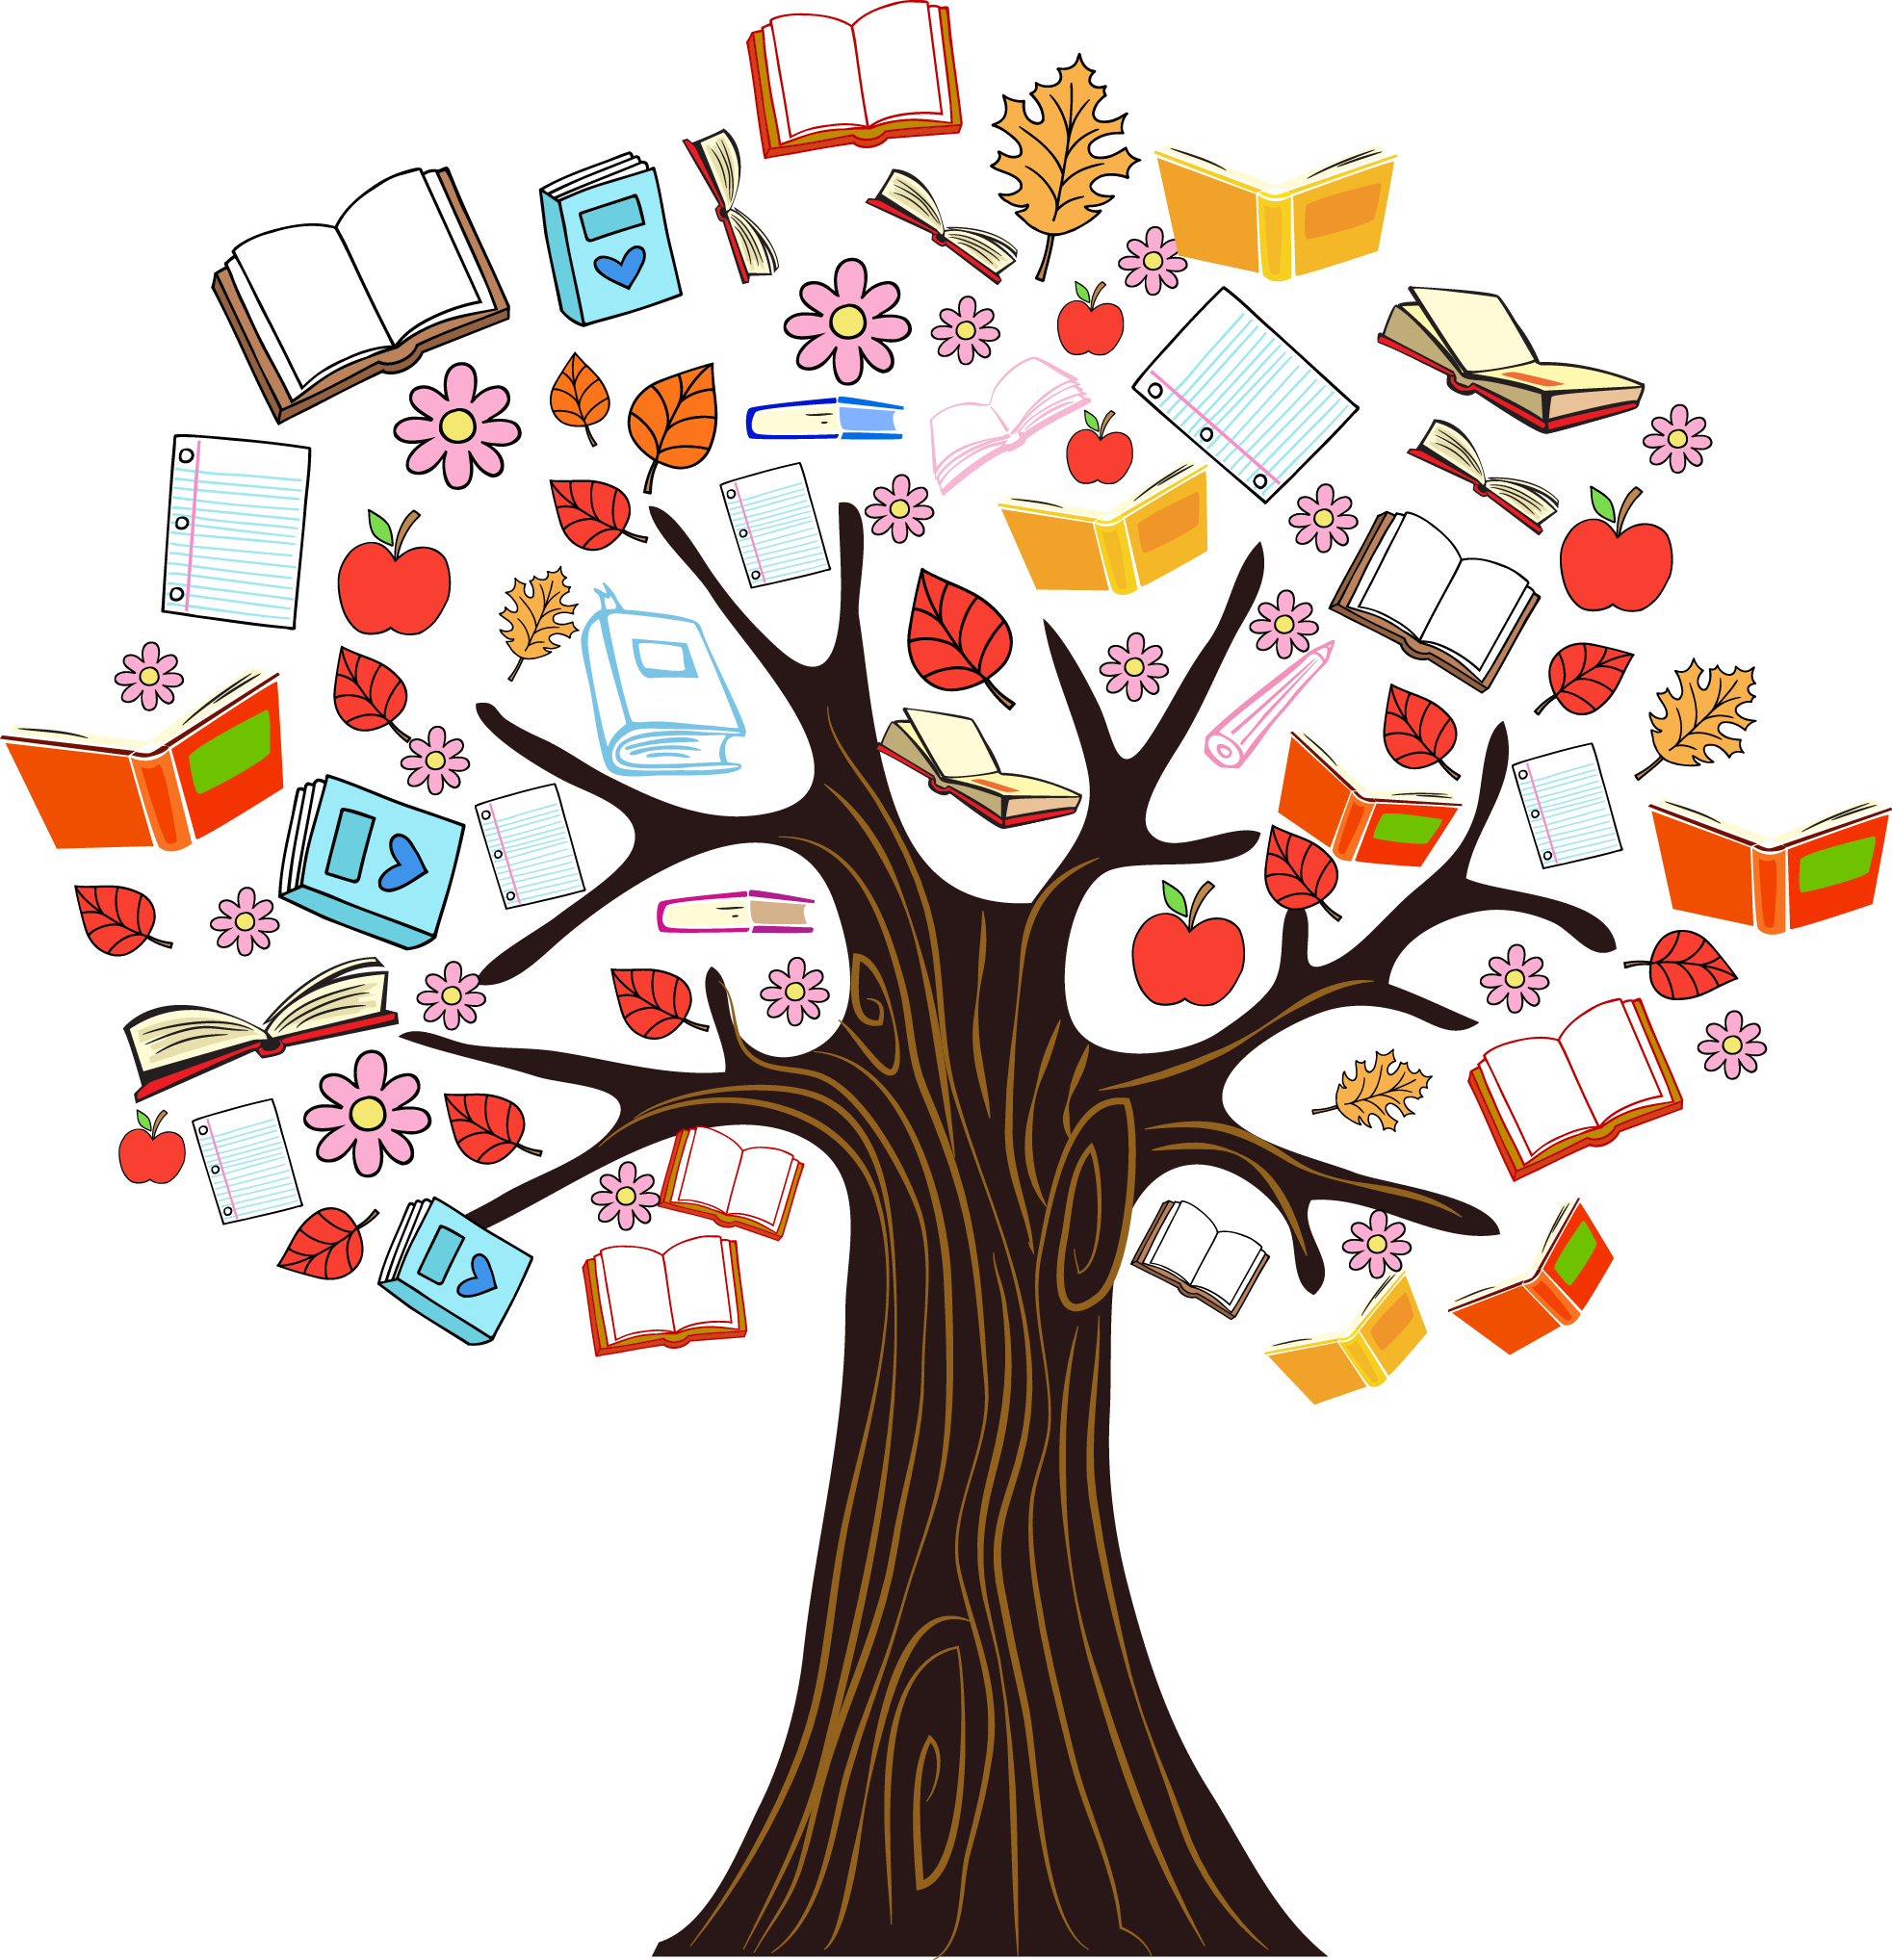 Tree of the knowledge of good and evil clipart download Book Tree Reading Clip art - Color book knowledge tree vector ... download